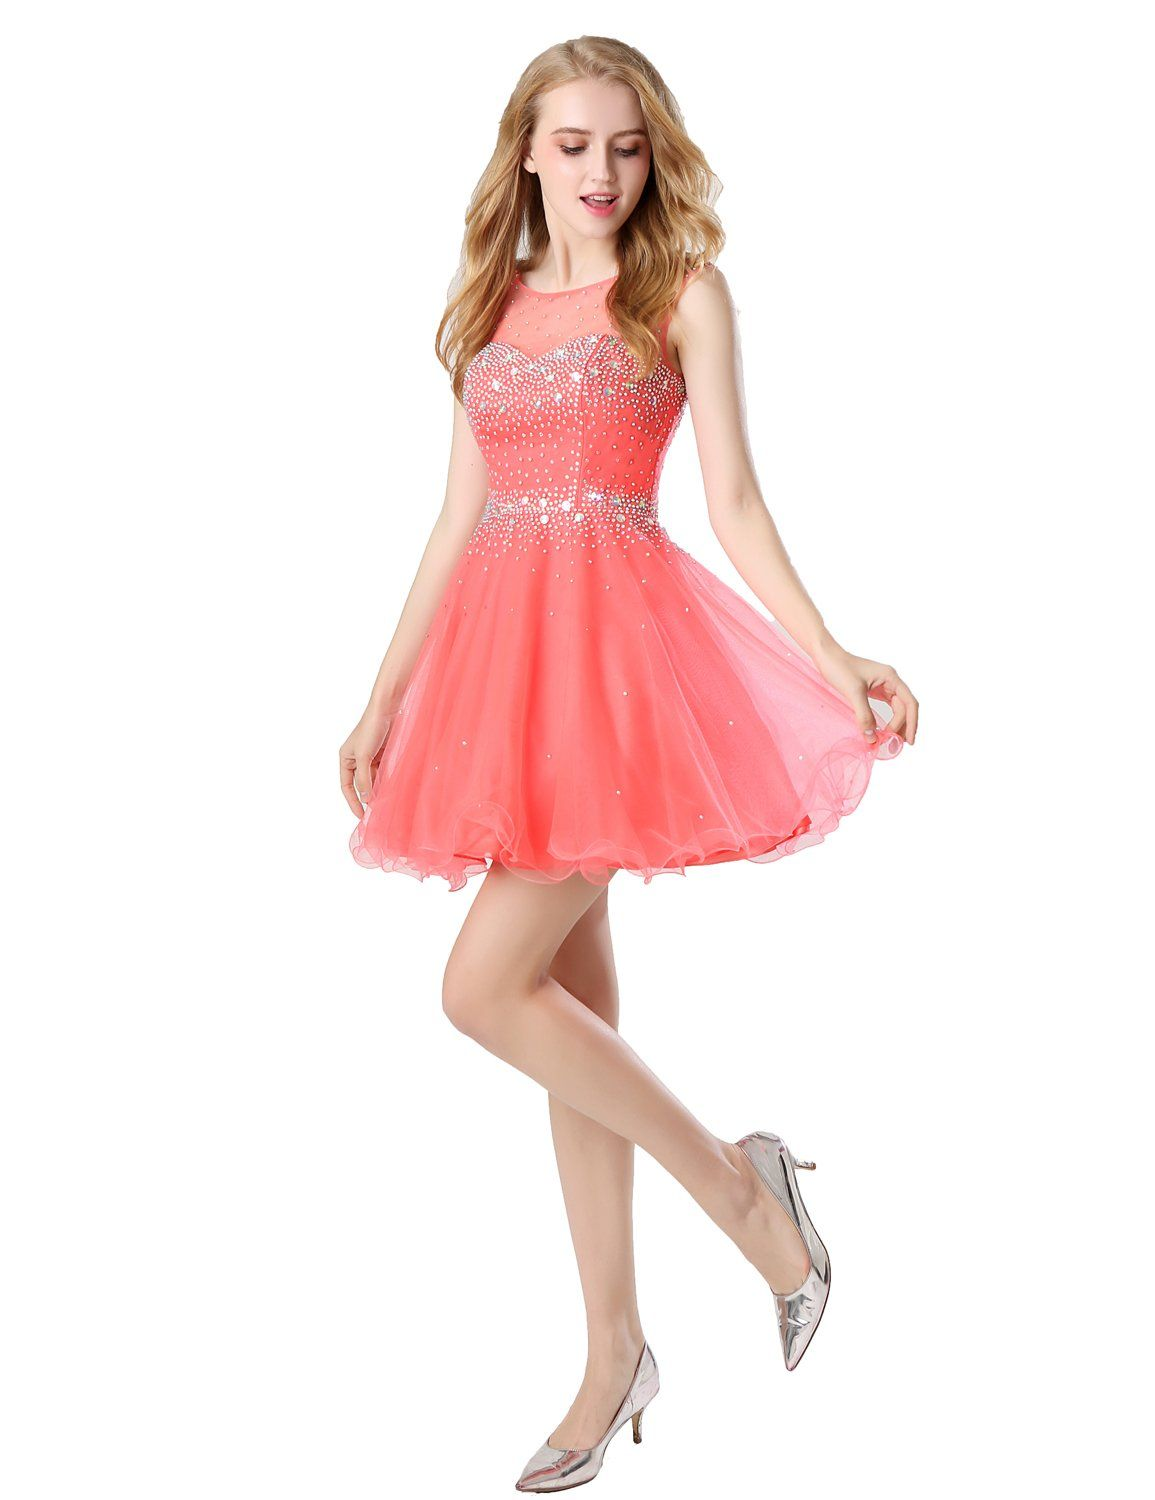 bfdfc94344d Belle House Womens Short Tulle Beads Homecoming Dress 2018 Prom Gown Sky  Blue    Want to know more